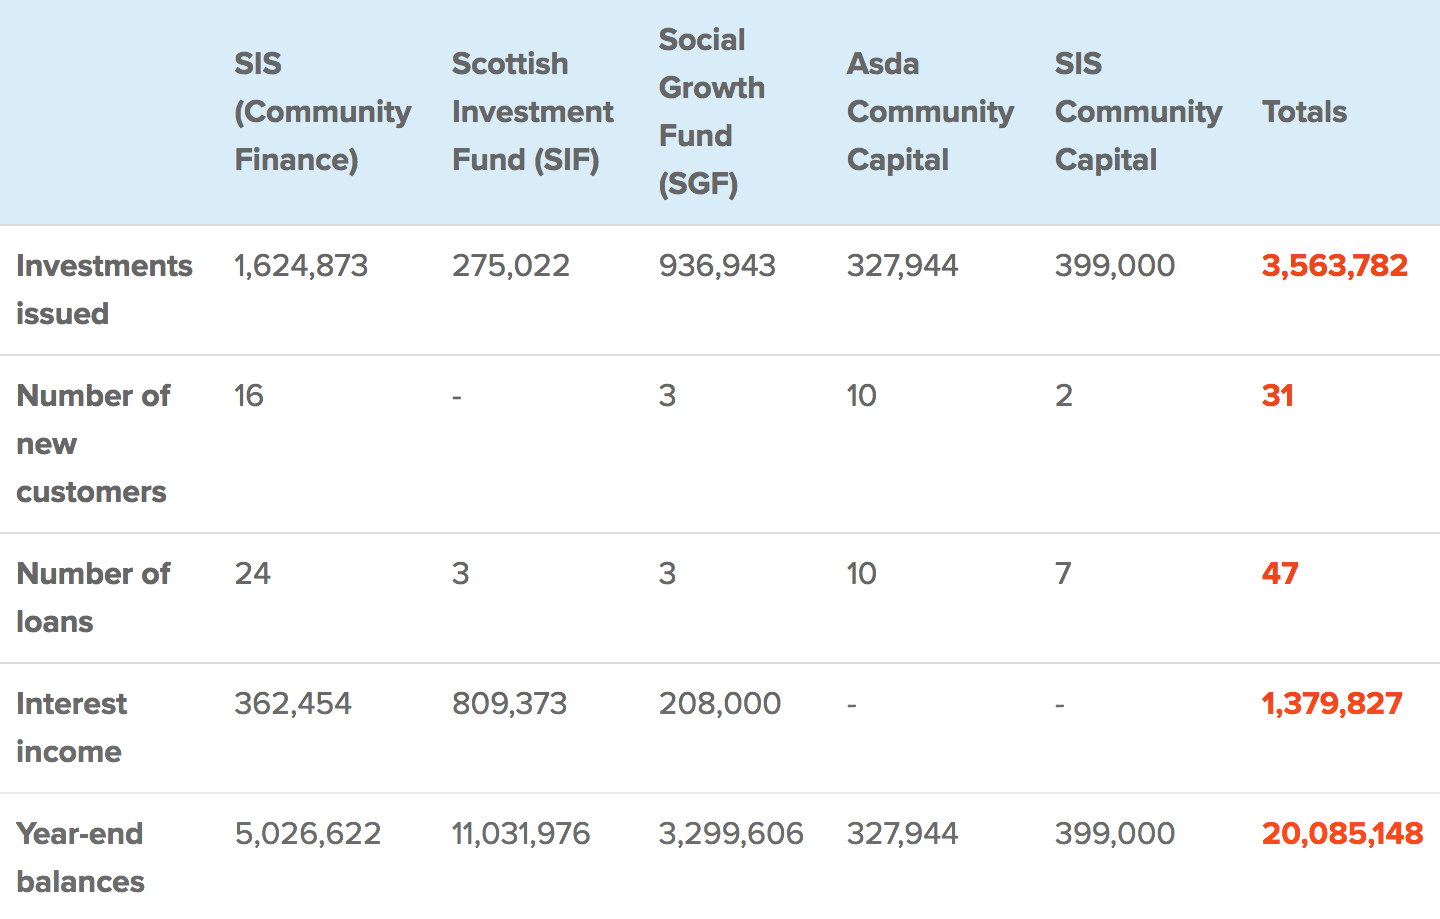 Financial highlights table 2015/2016